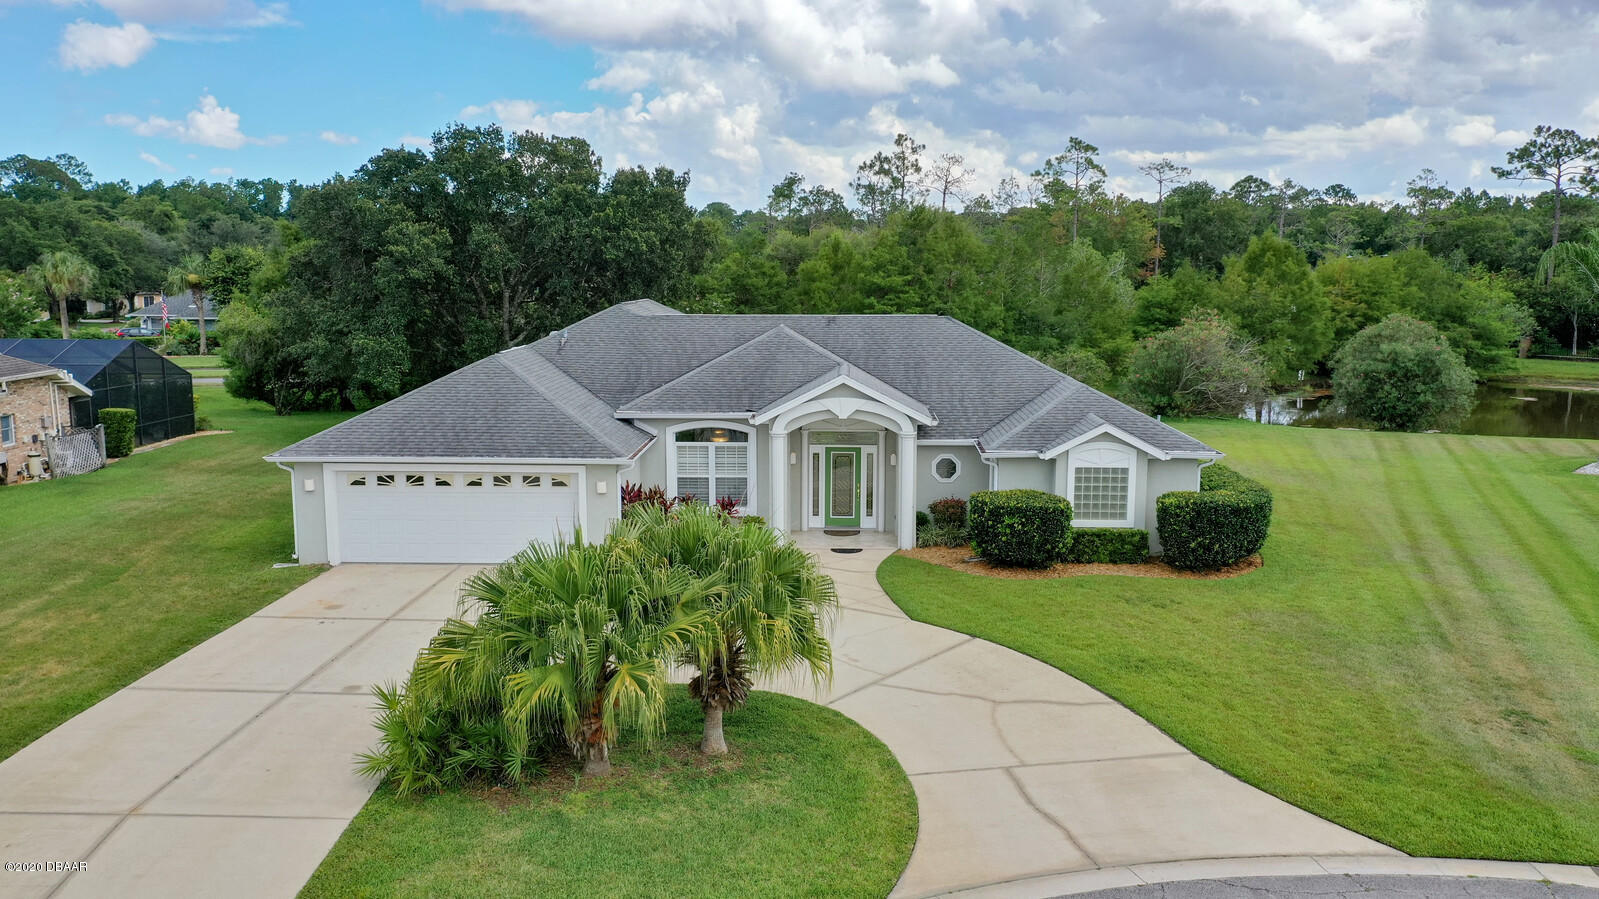 Details for 5 Whipper In Circle, Ormond Beach, FL 32174